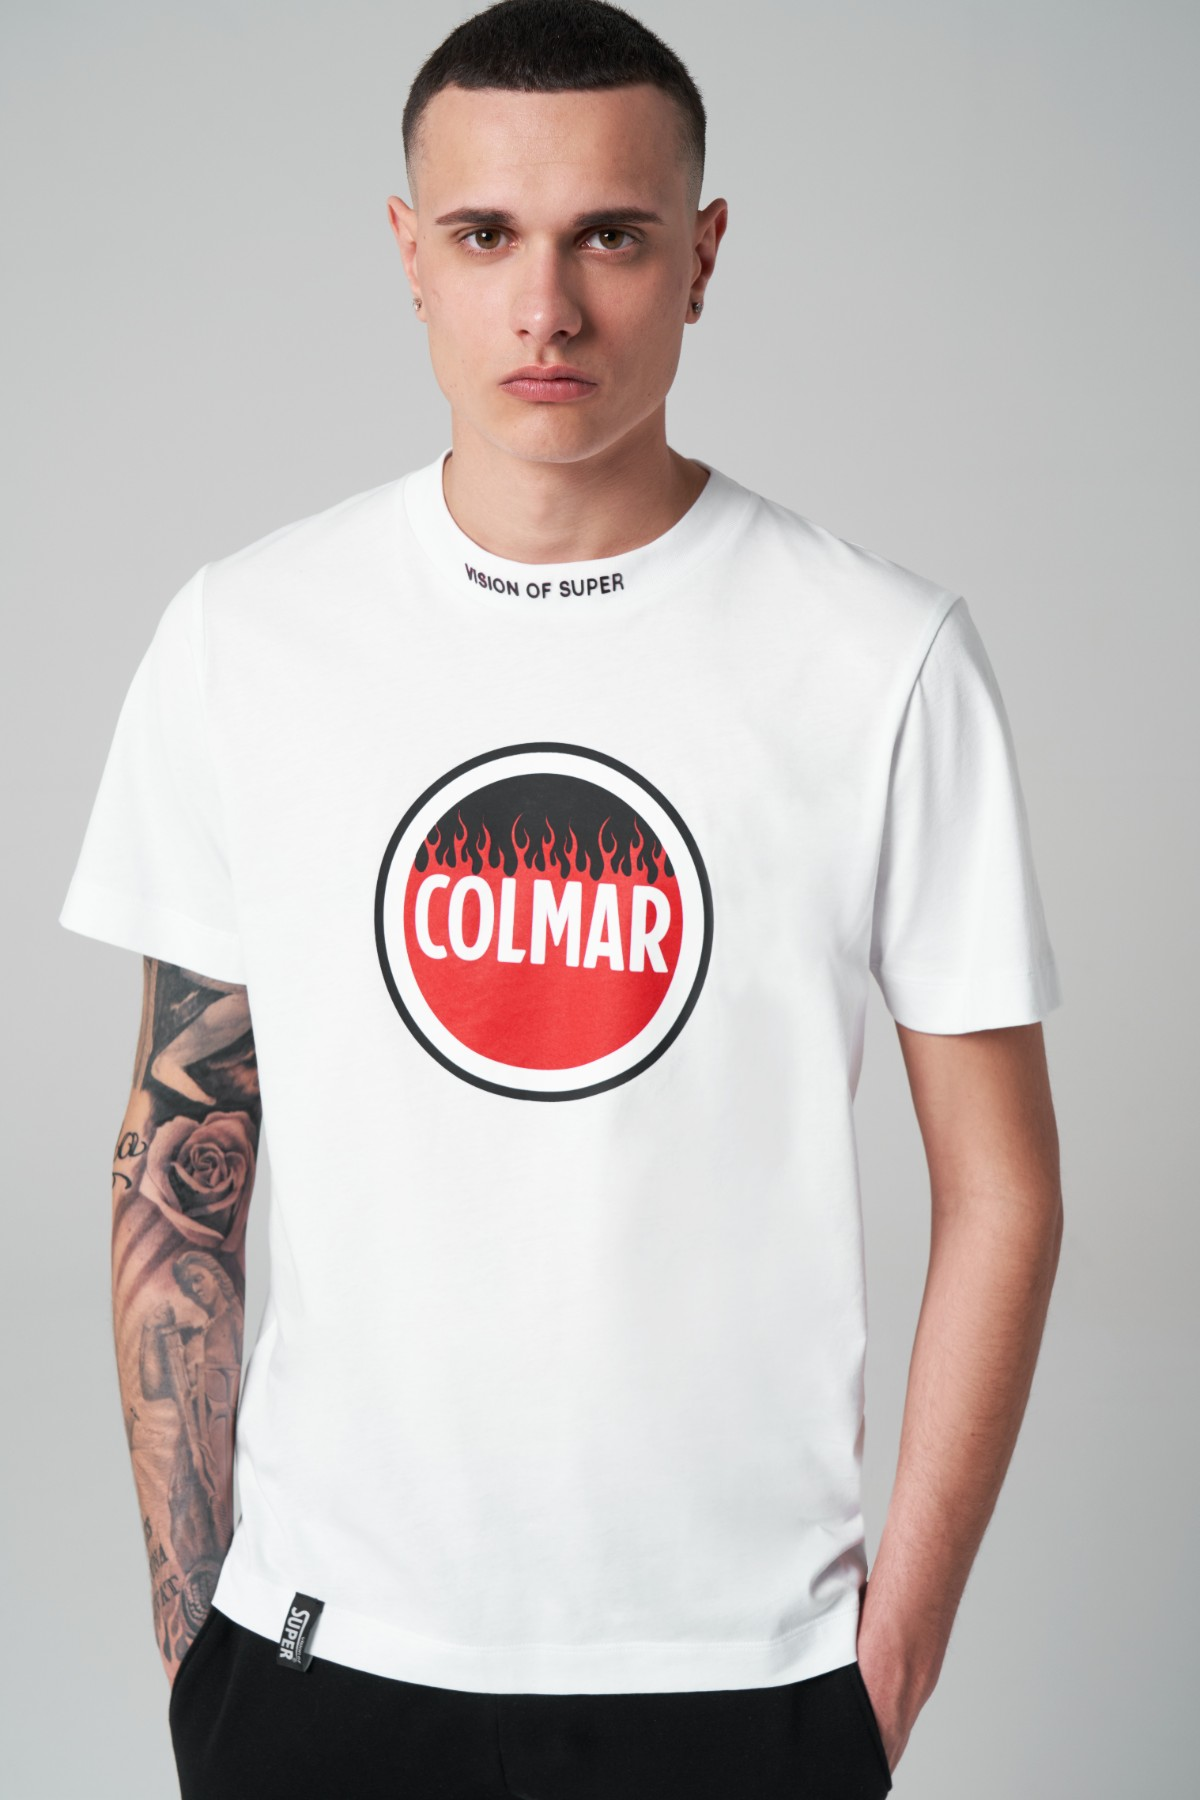 Vision Of Super x Colmar T-shirt